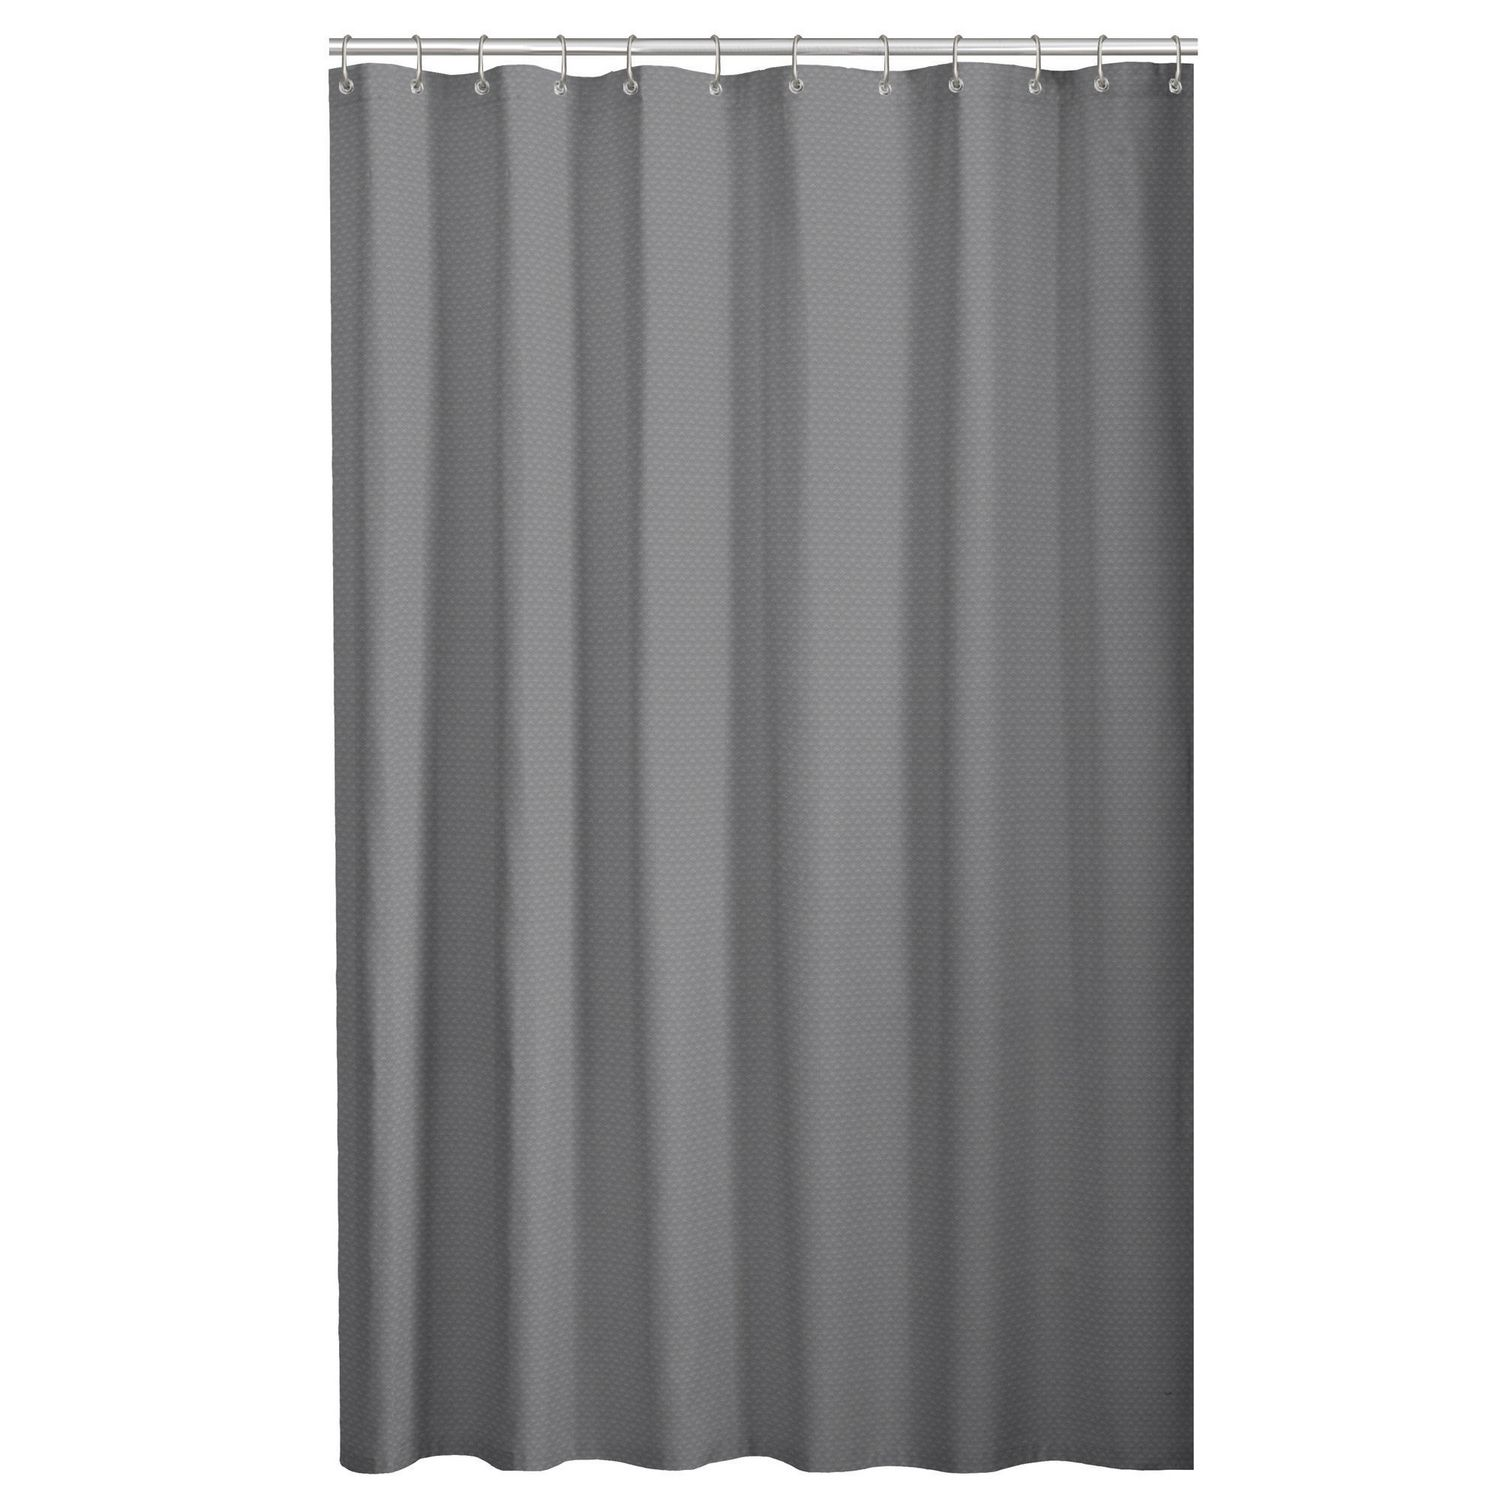 Hometrends waffle fabric shower curtain with peva liner walmart canada